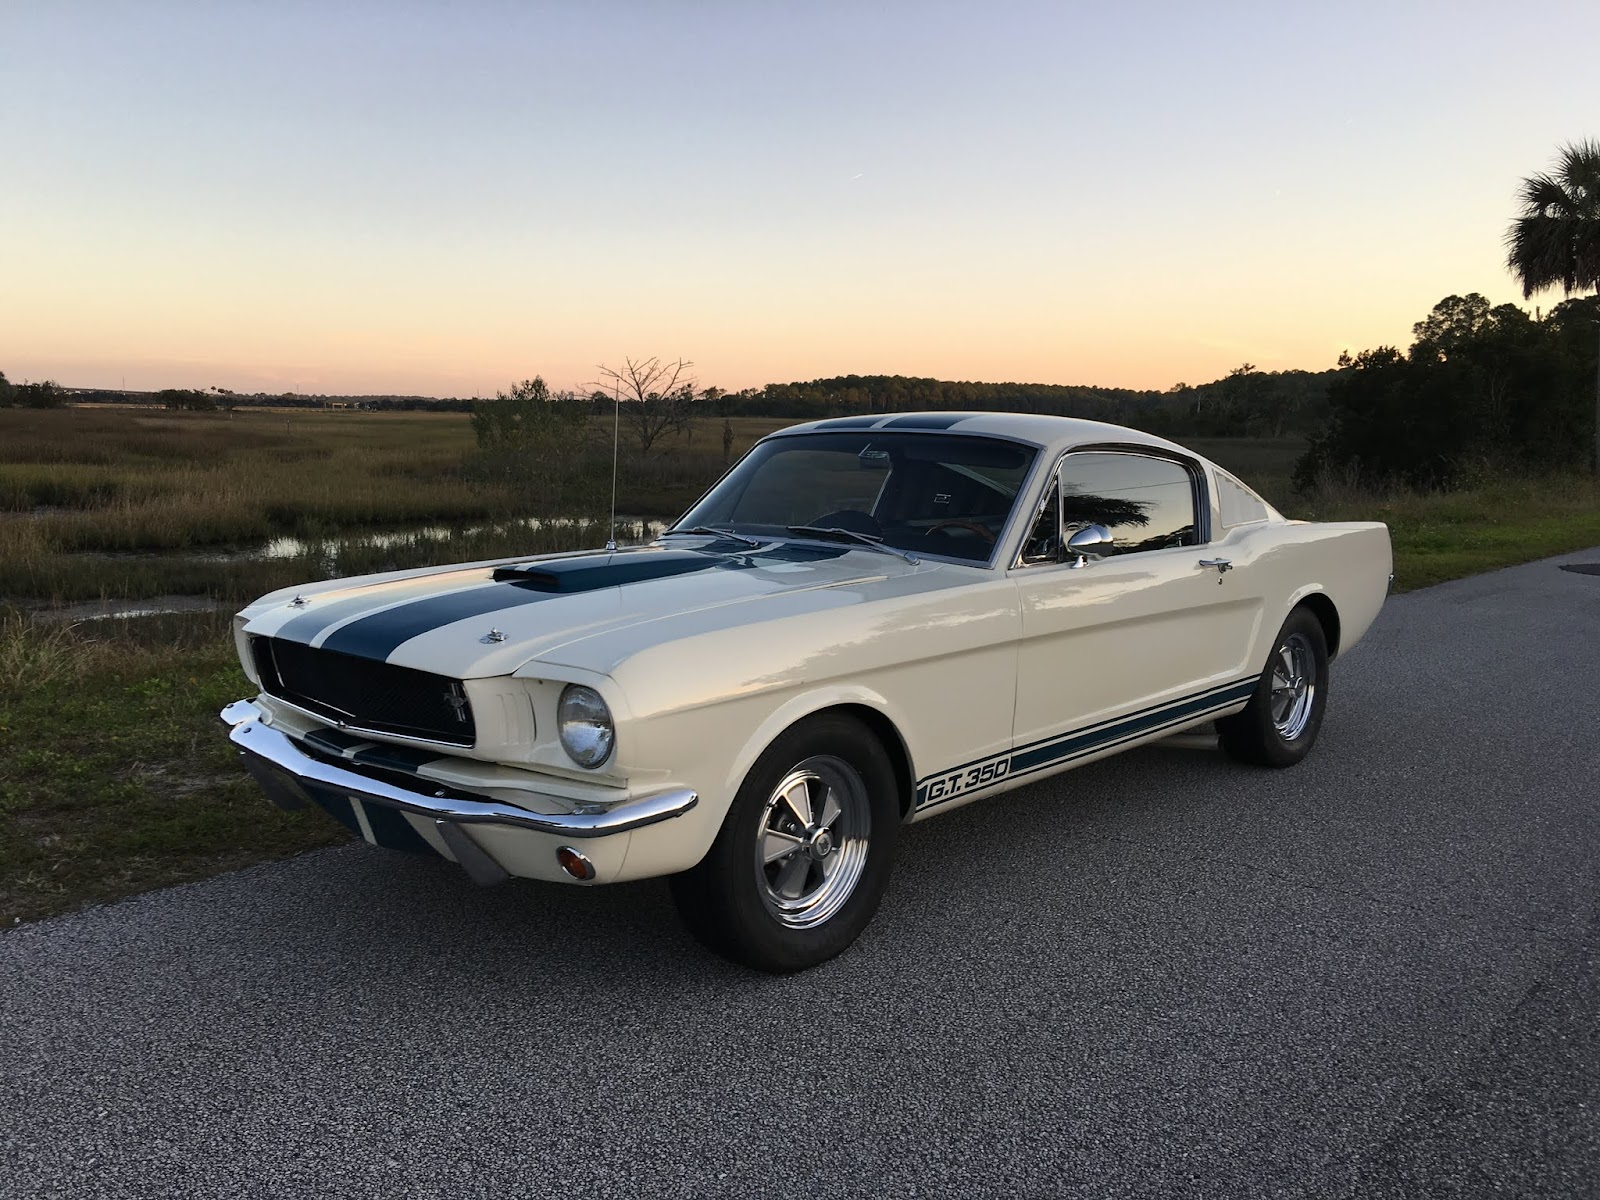 Virginia Classic Mustang Blog: 1965 Shelby GT350 Mustang For Sale